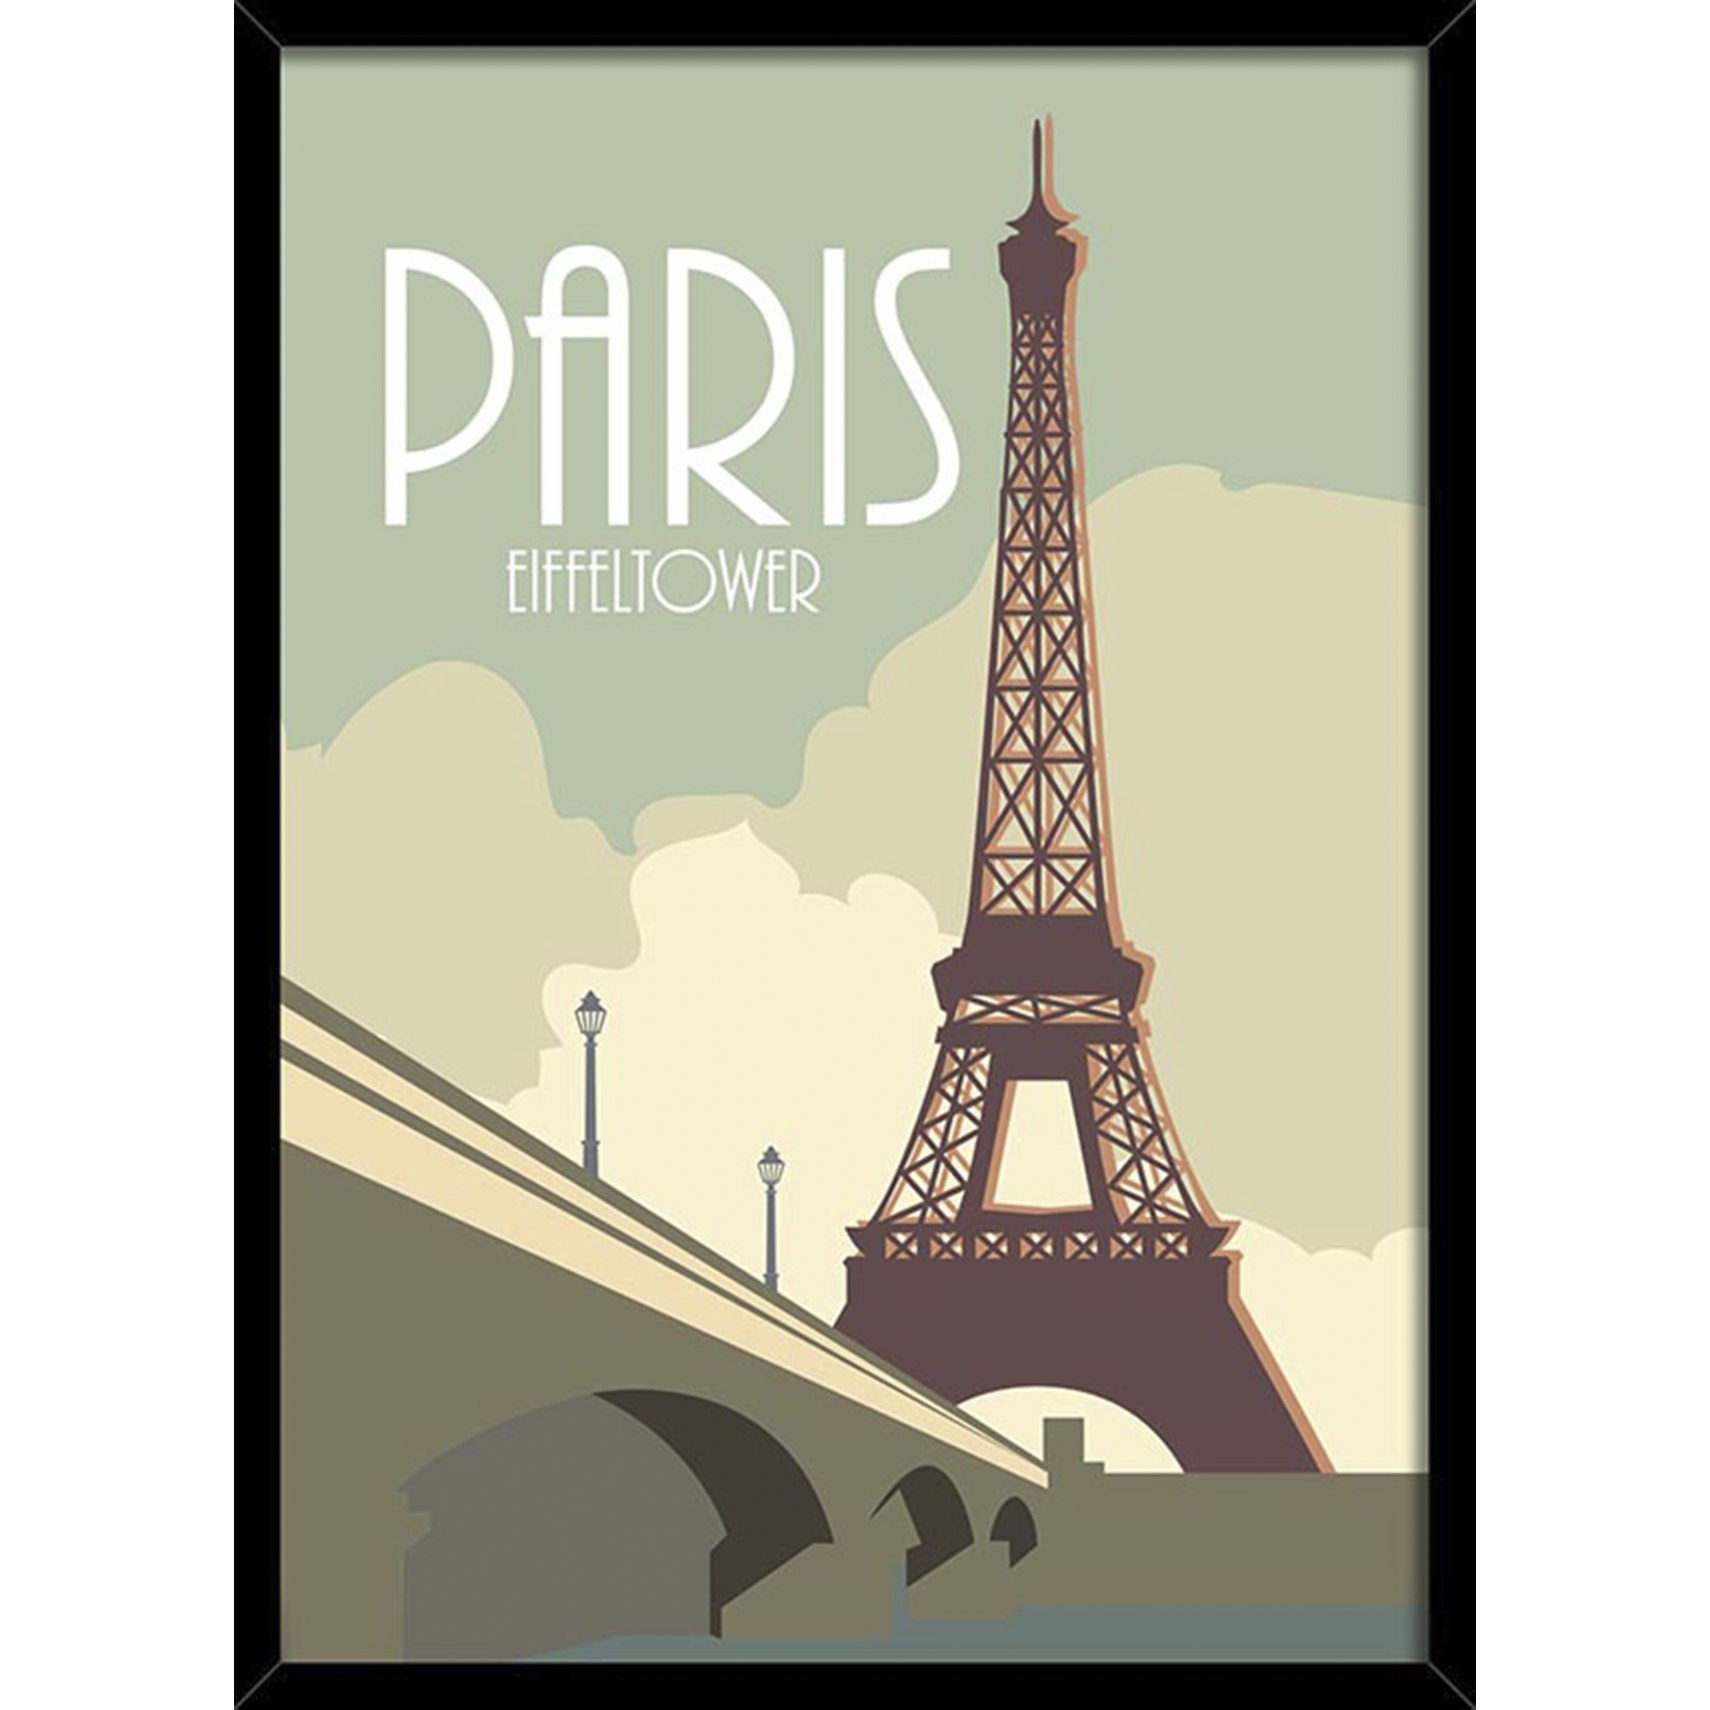 BY BILLEDER Plakat - PARIS m/ sort ramme